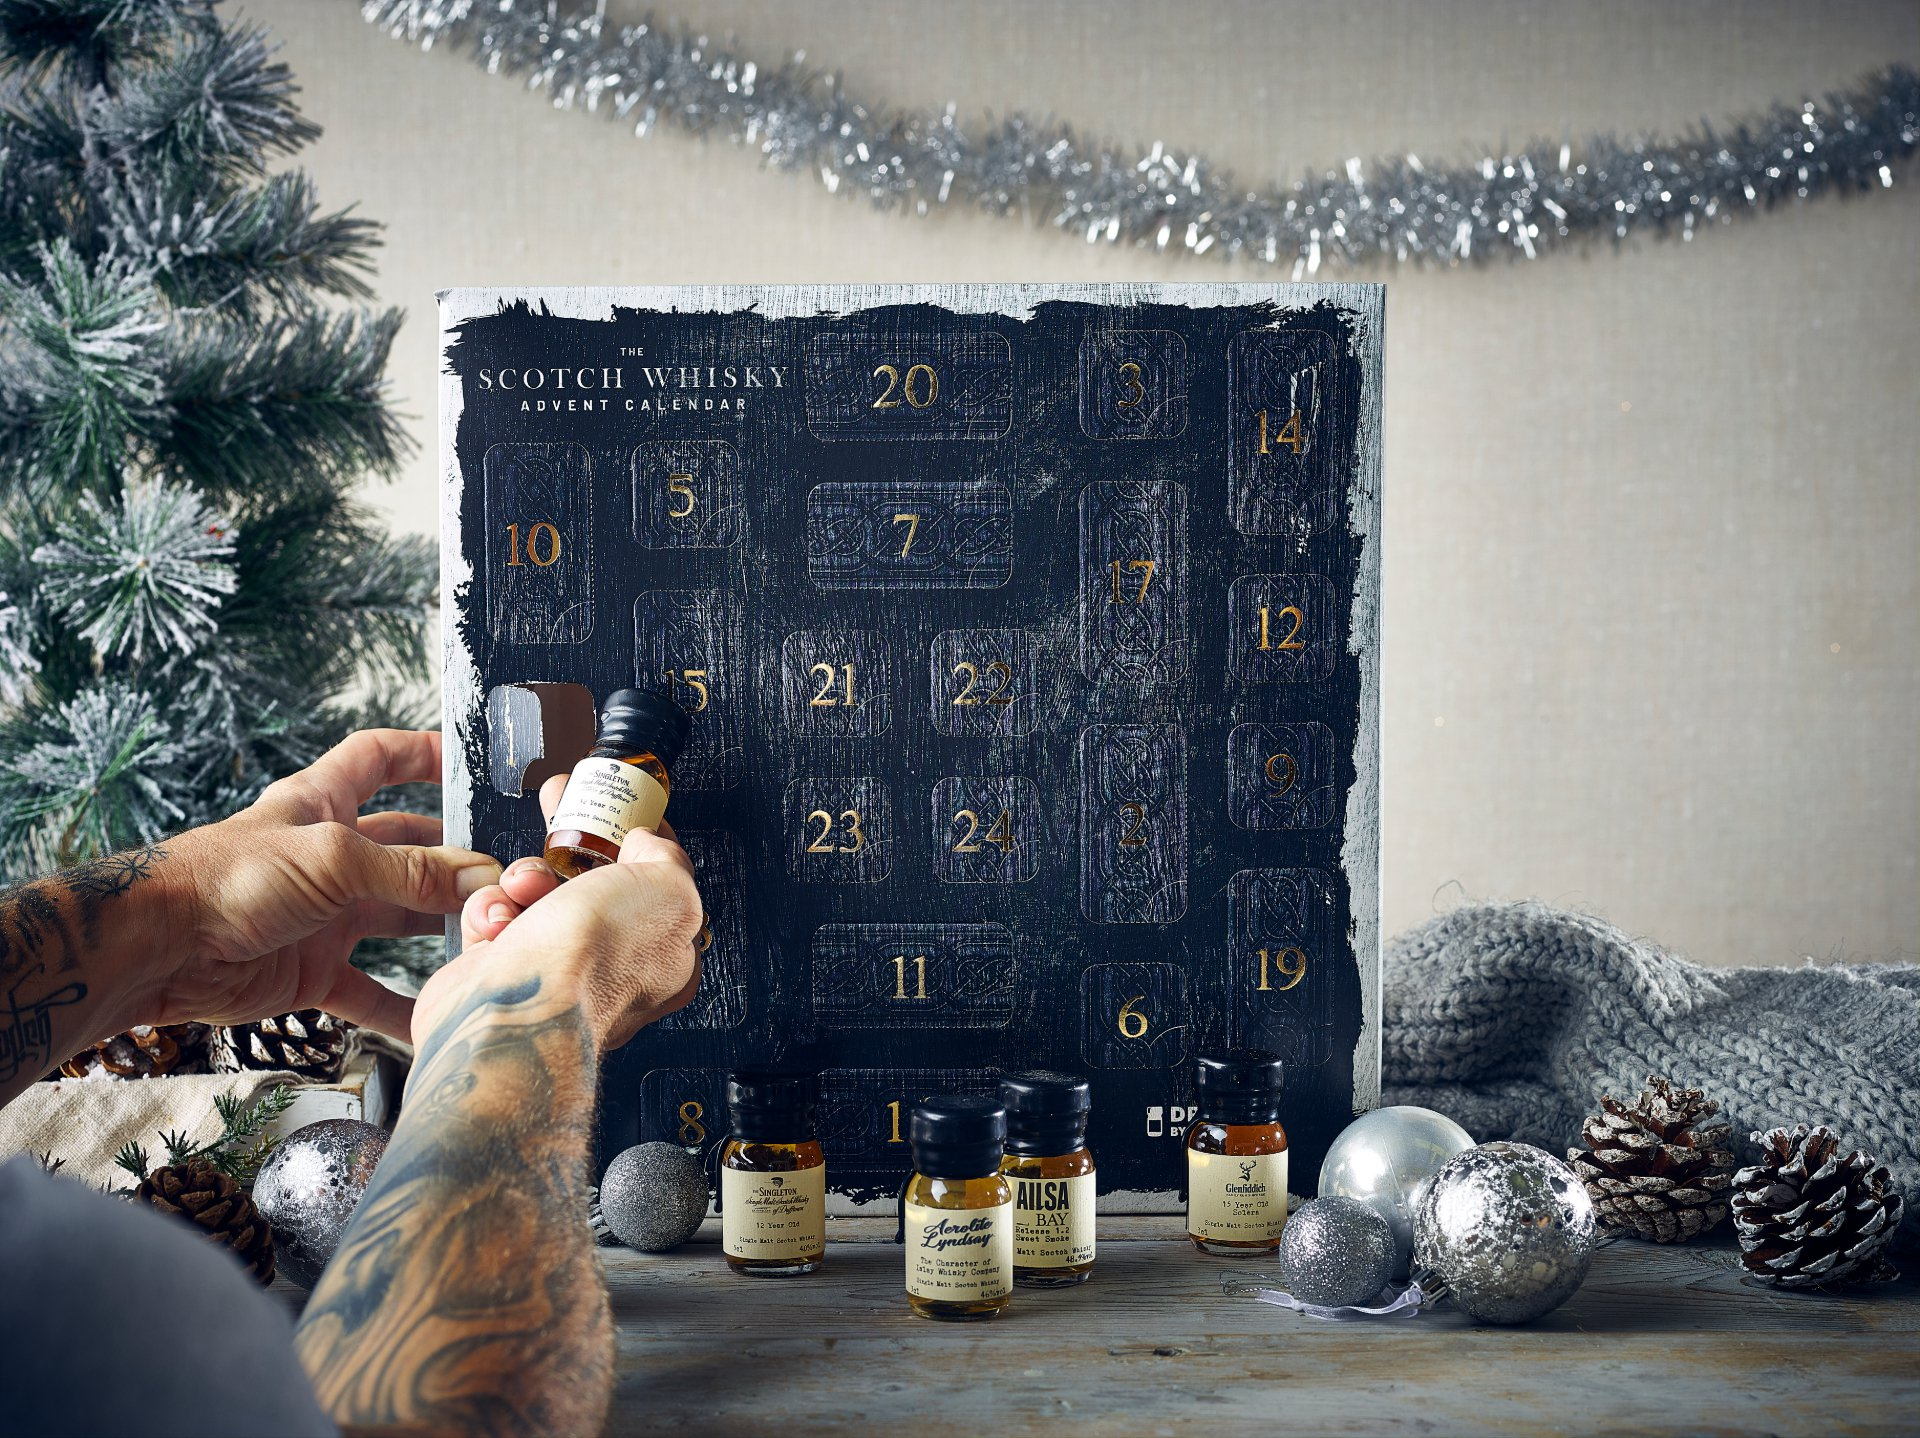 19 Of The Best Advent Calendars For Adults In 2020, From Gin To Stationery And Cheese photo